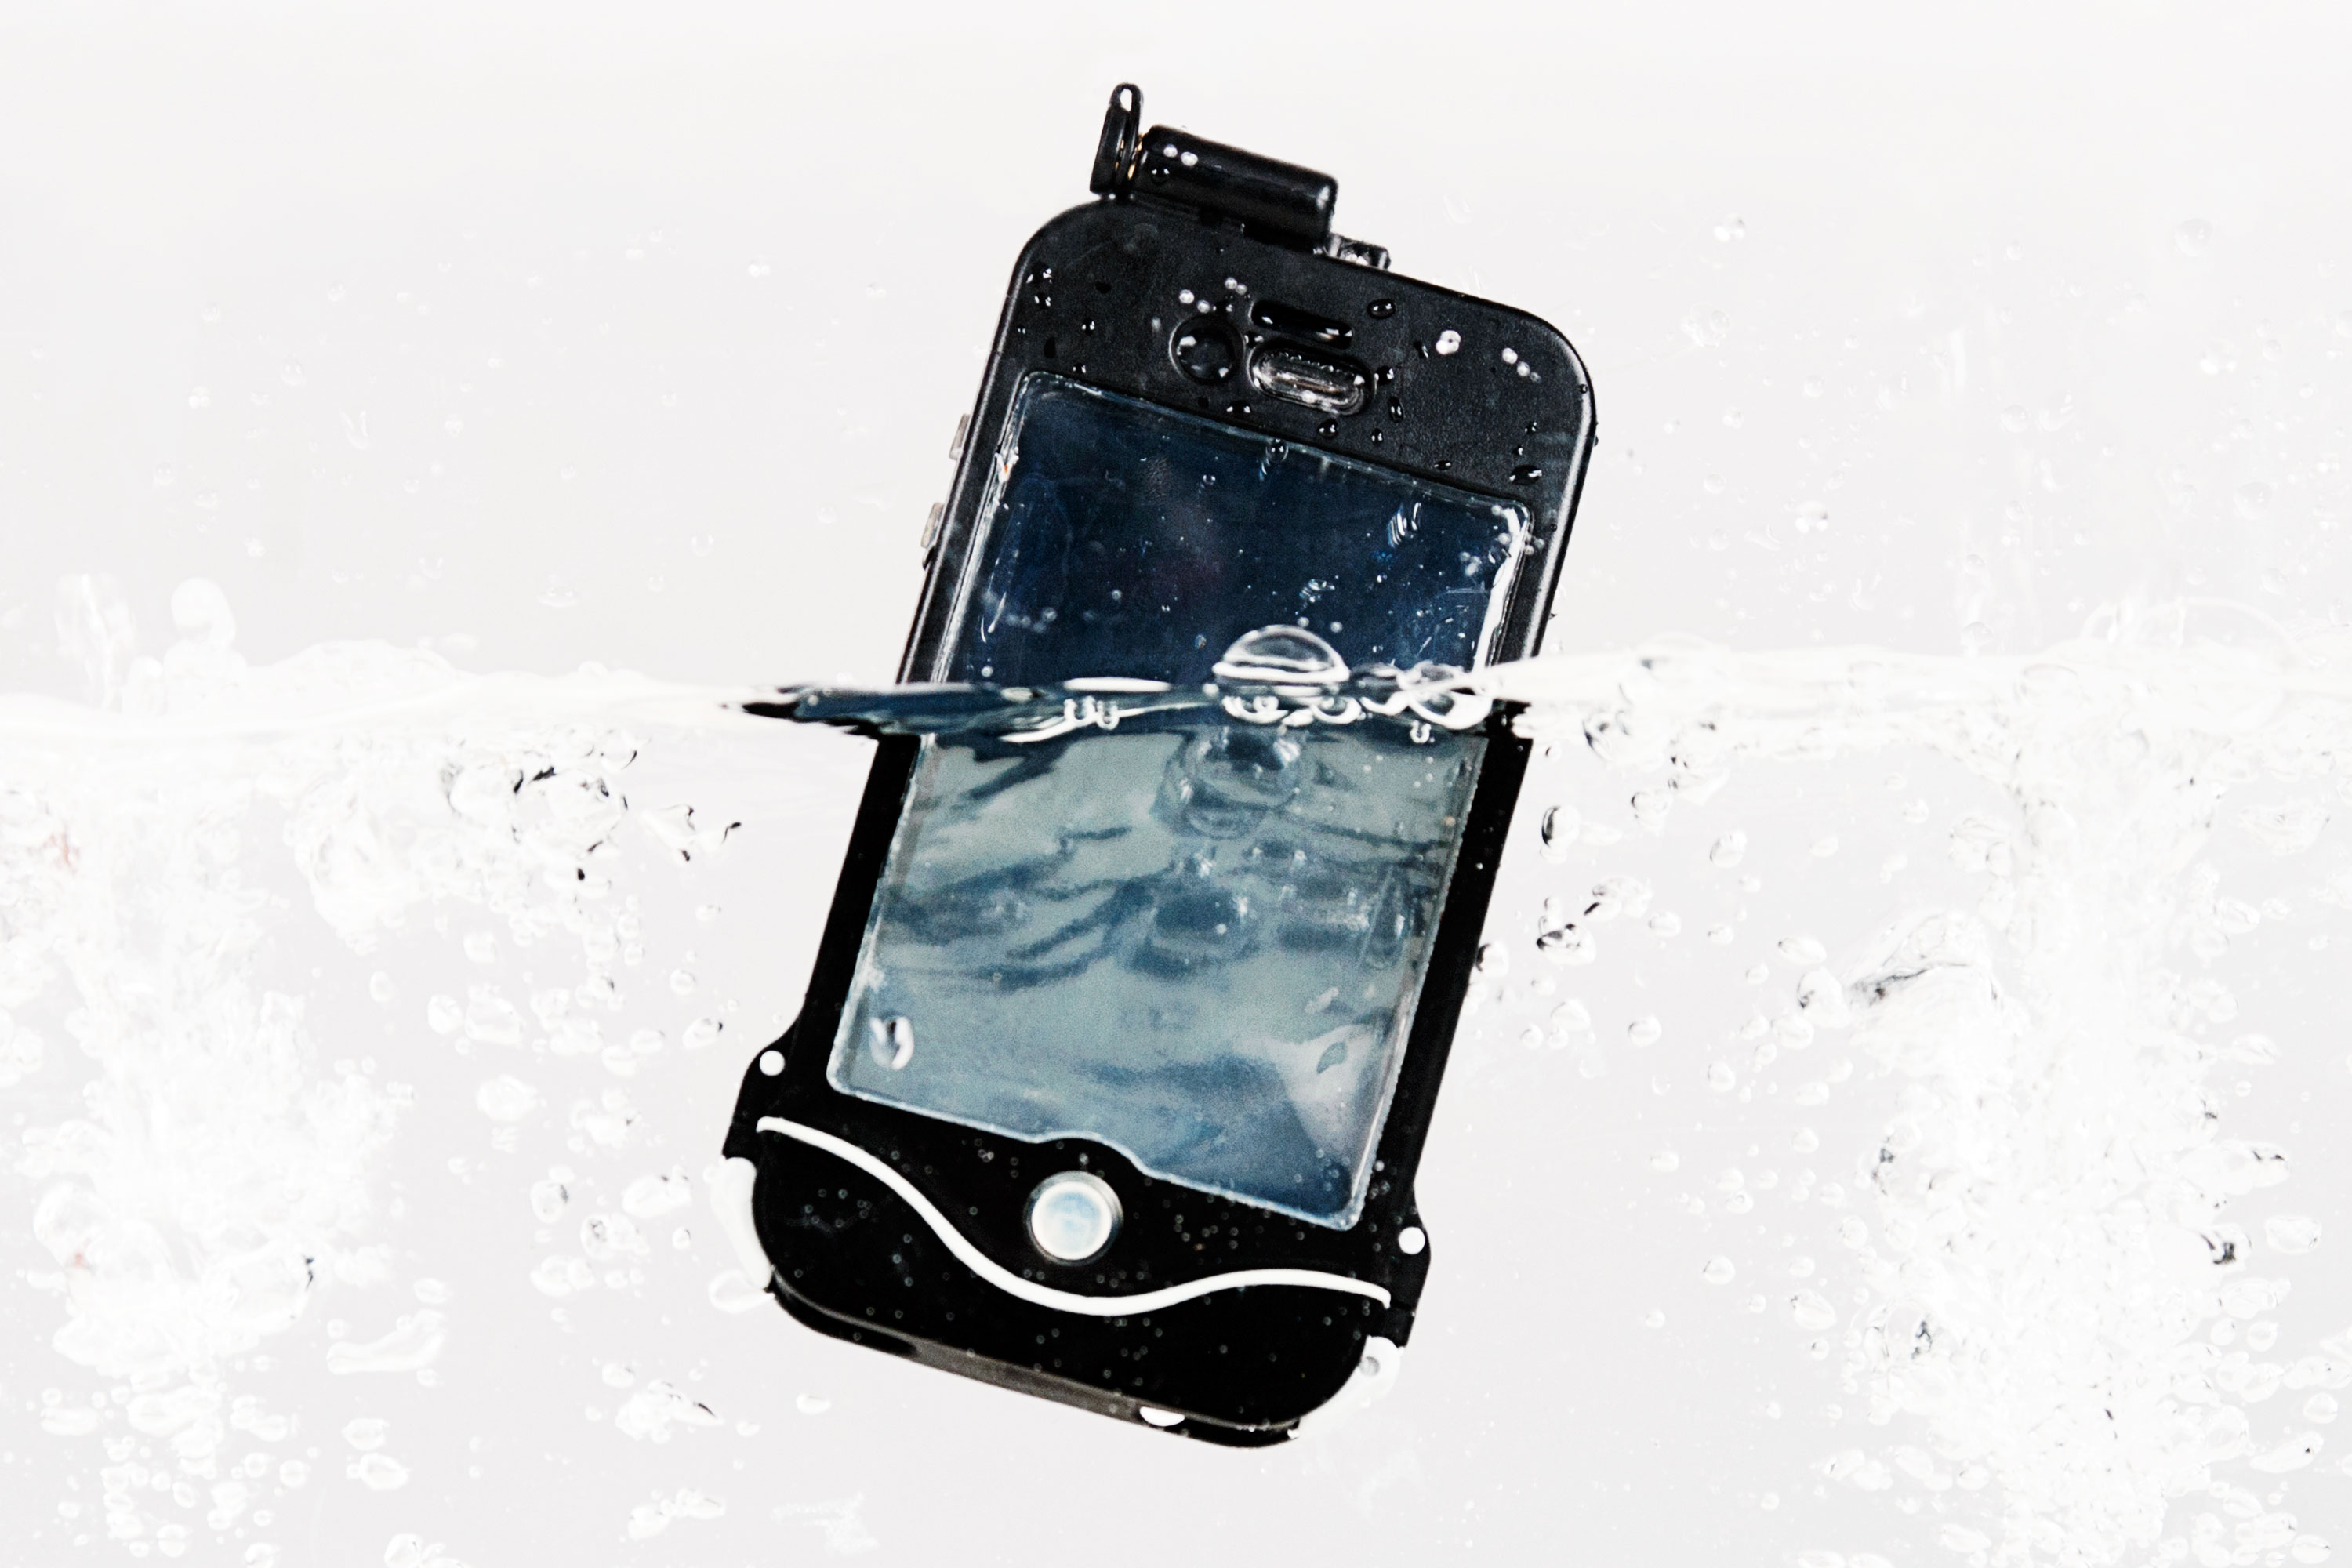 underwater-iphone-case-a555.0000001338932560